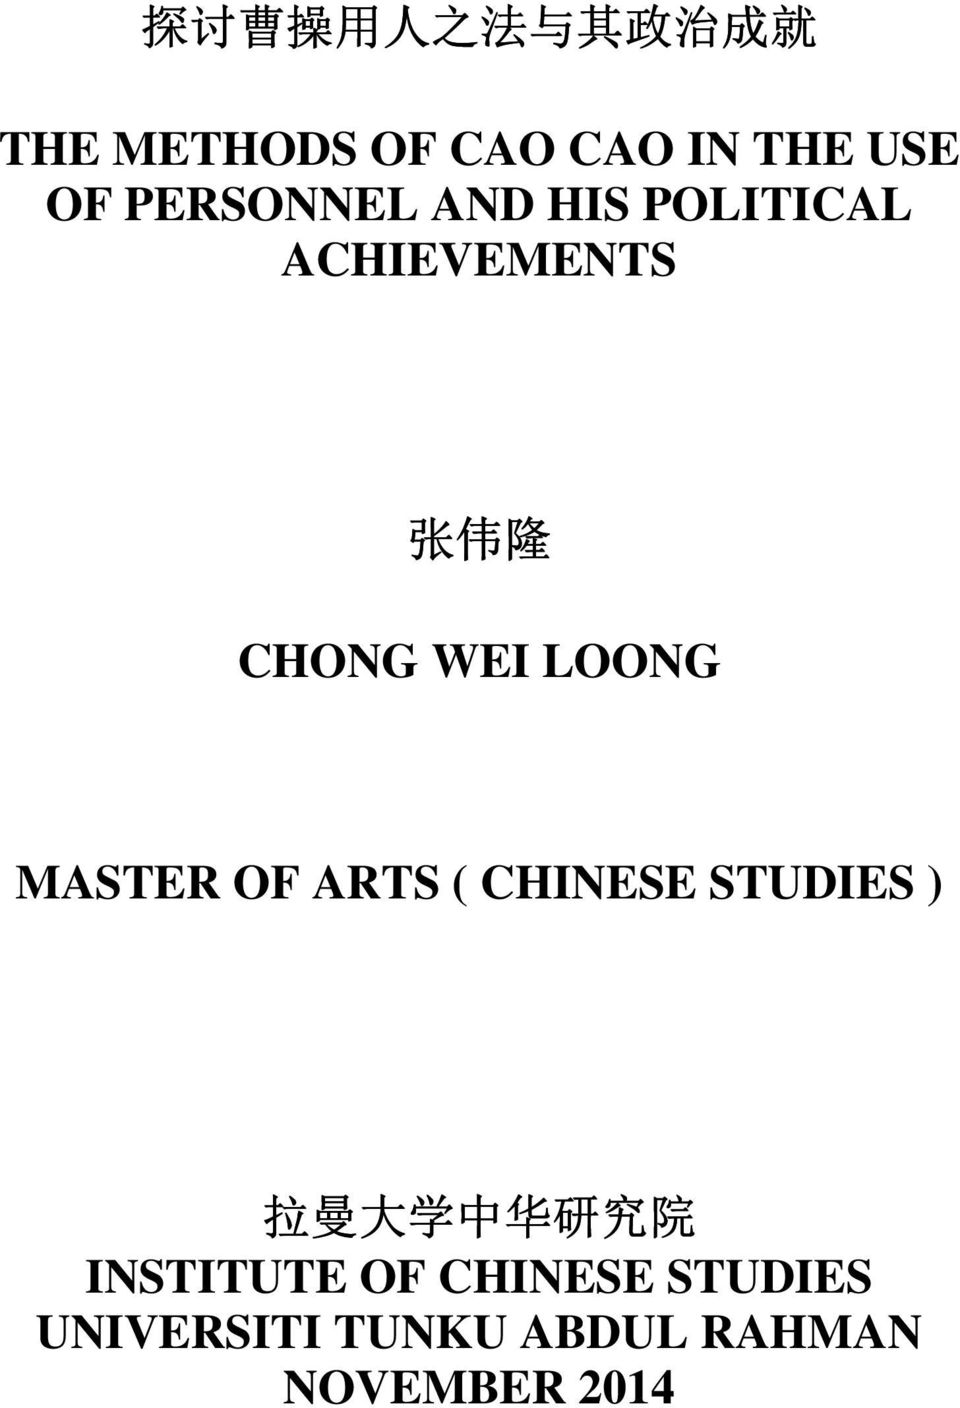 LOONG MASTER OF ARTS ( CHINESE STUDIES ) 拉 曼 大 学 中 华 研 究 院